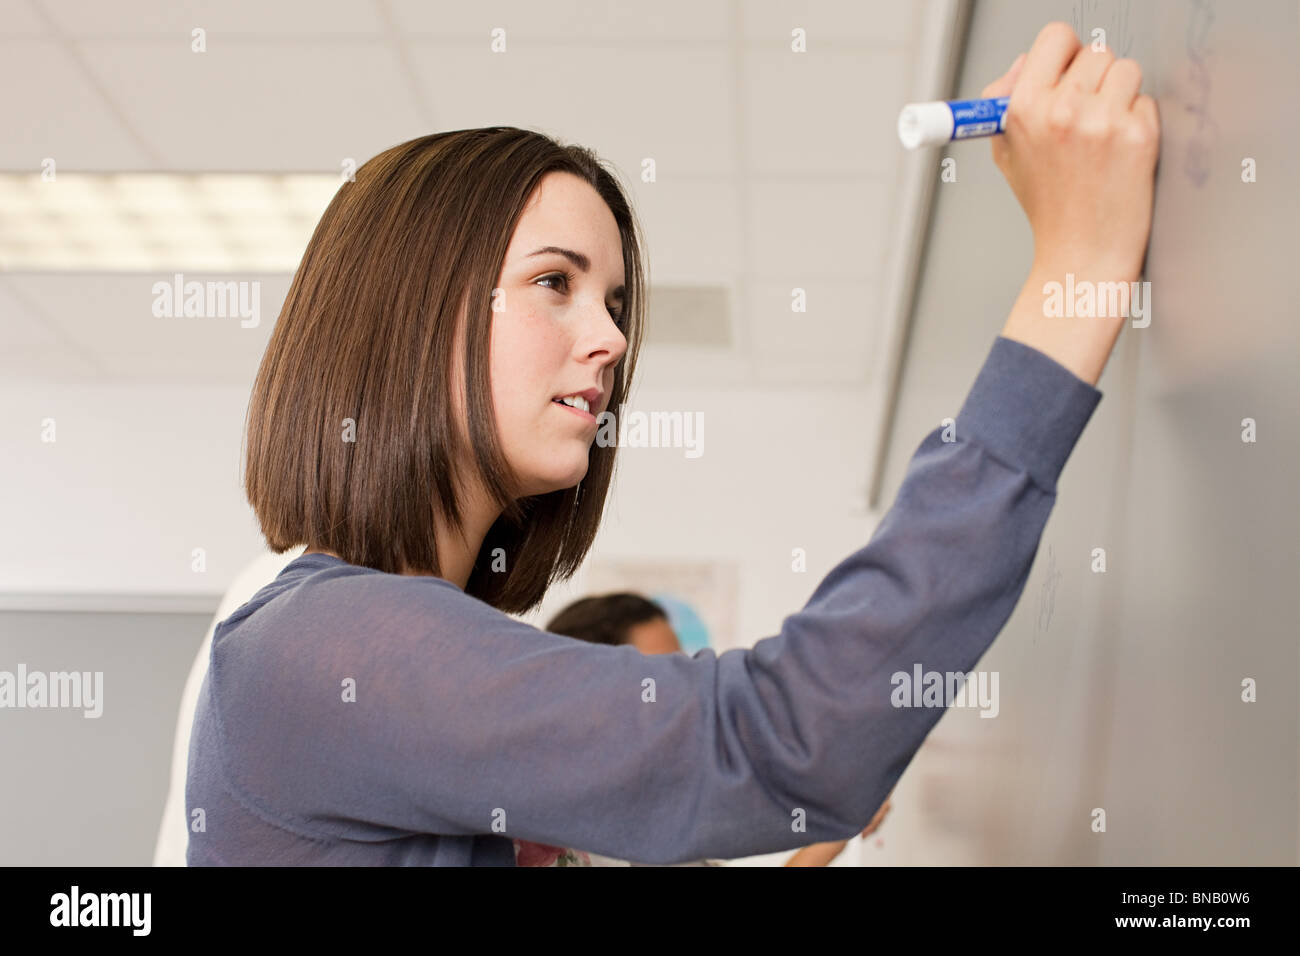 Female high school student writing on white board - Stock Image